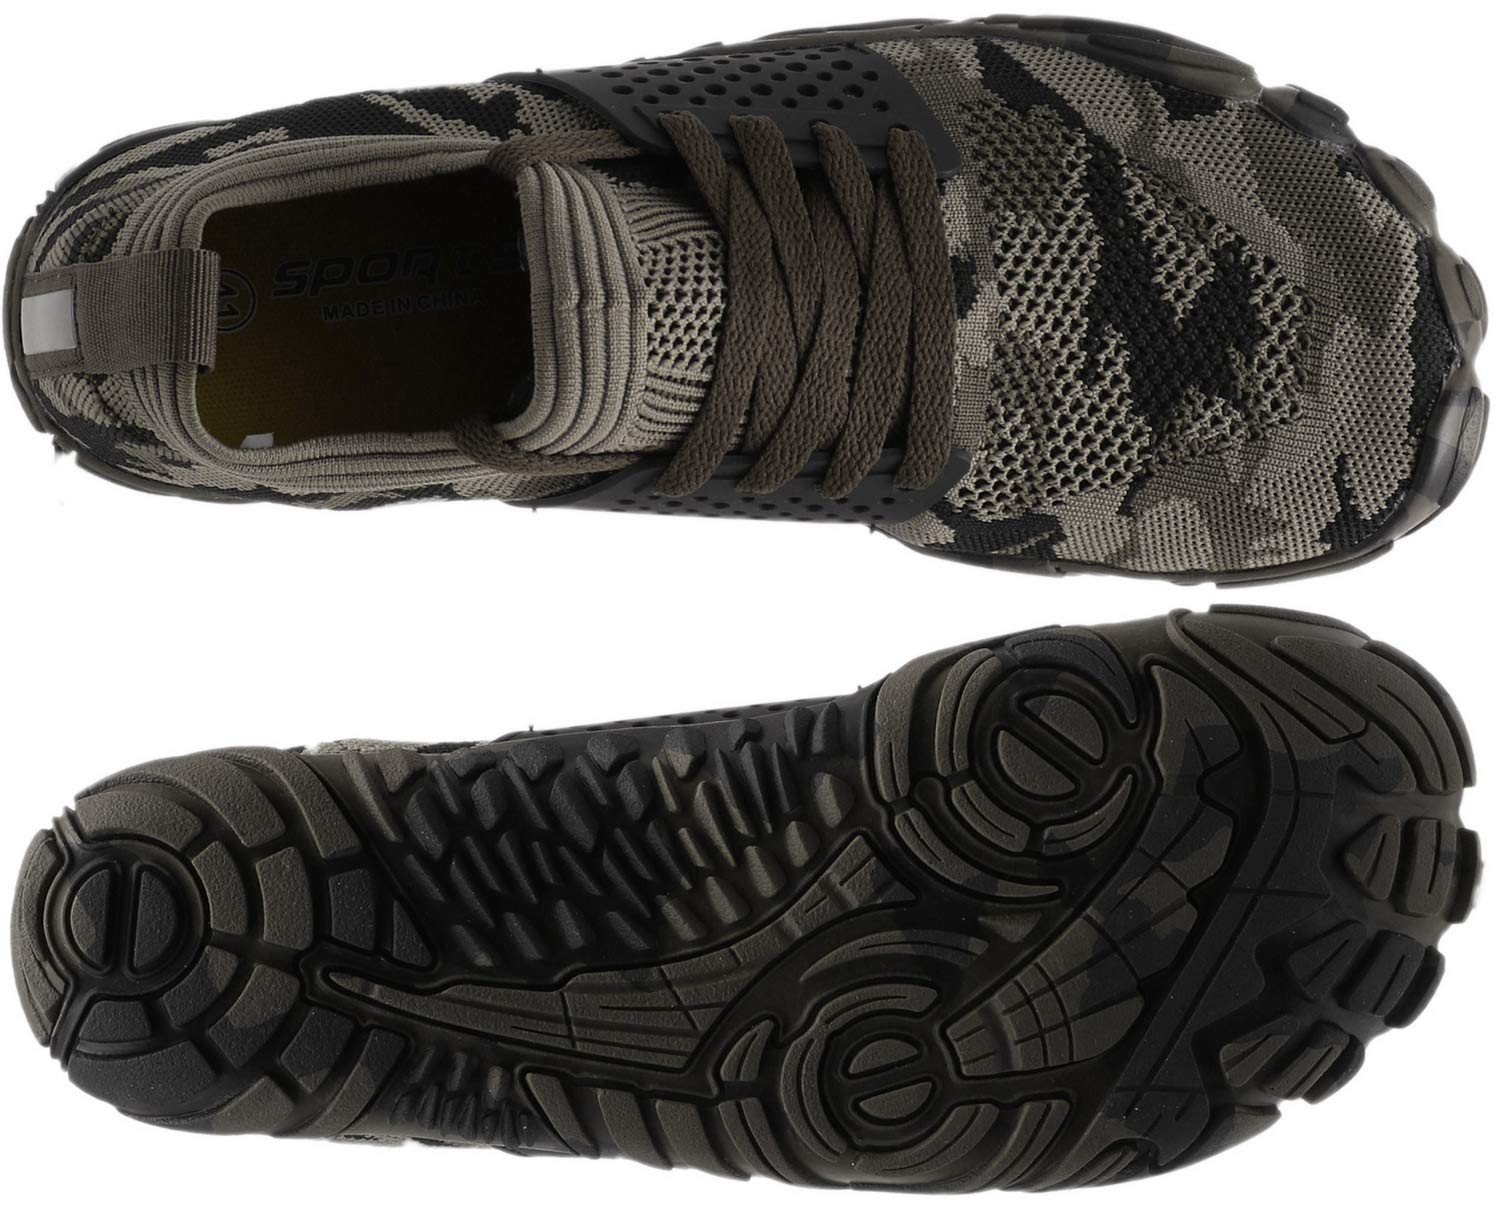 WHITIN Men Minimalist Trail Runner  Wide Toe Box  Barefoot Inspired